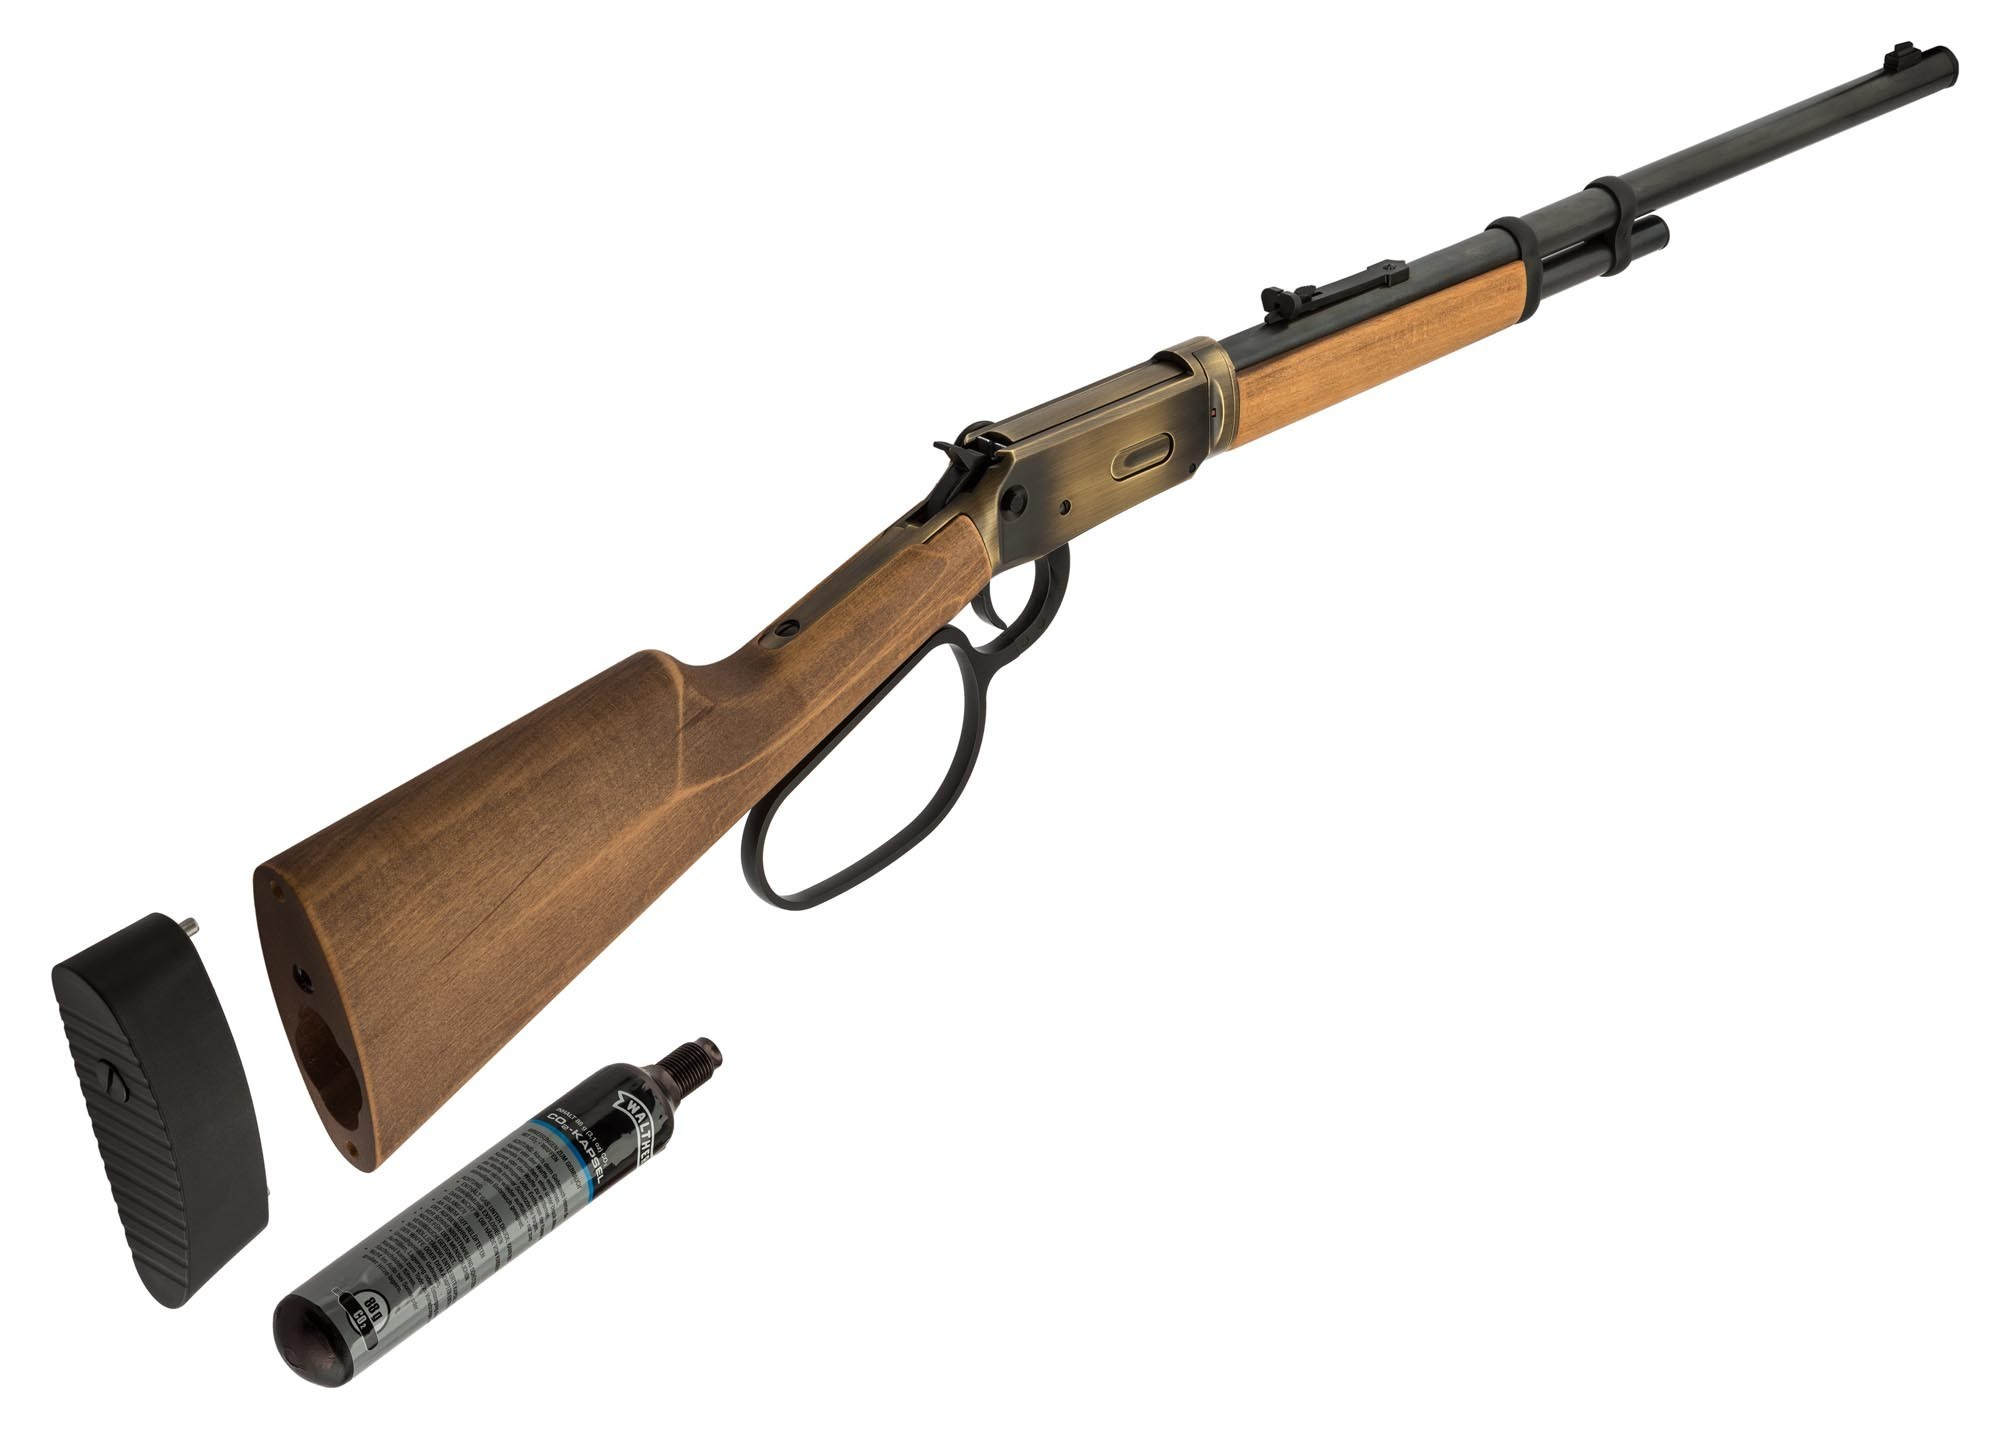 carabine air comprim walther levier sous garde 4 5 mm carabines plomb made in chasse. Black Bedroom Furniture Sets. Home Design Ideas